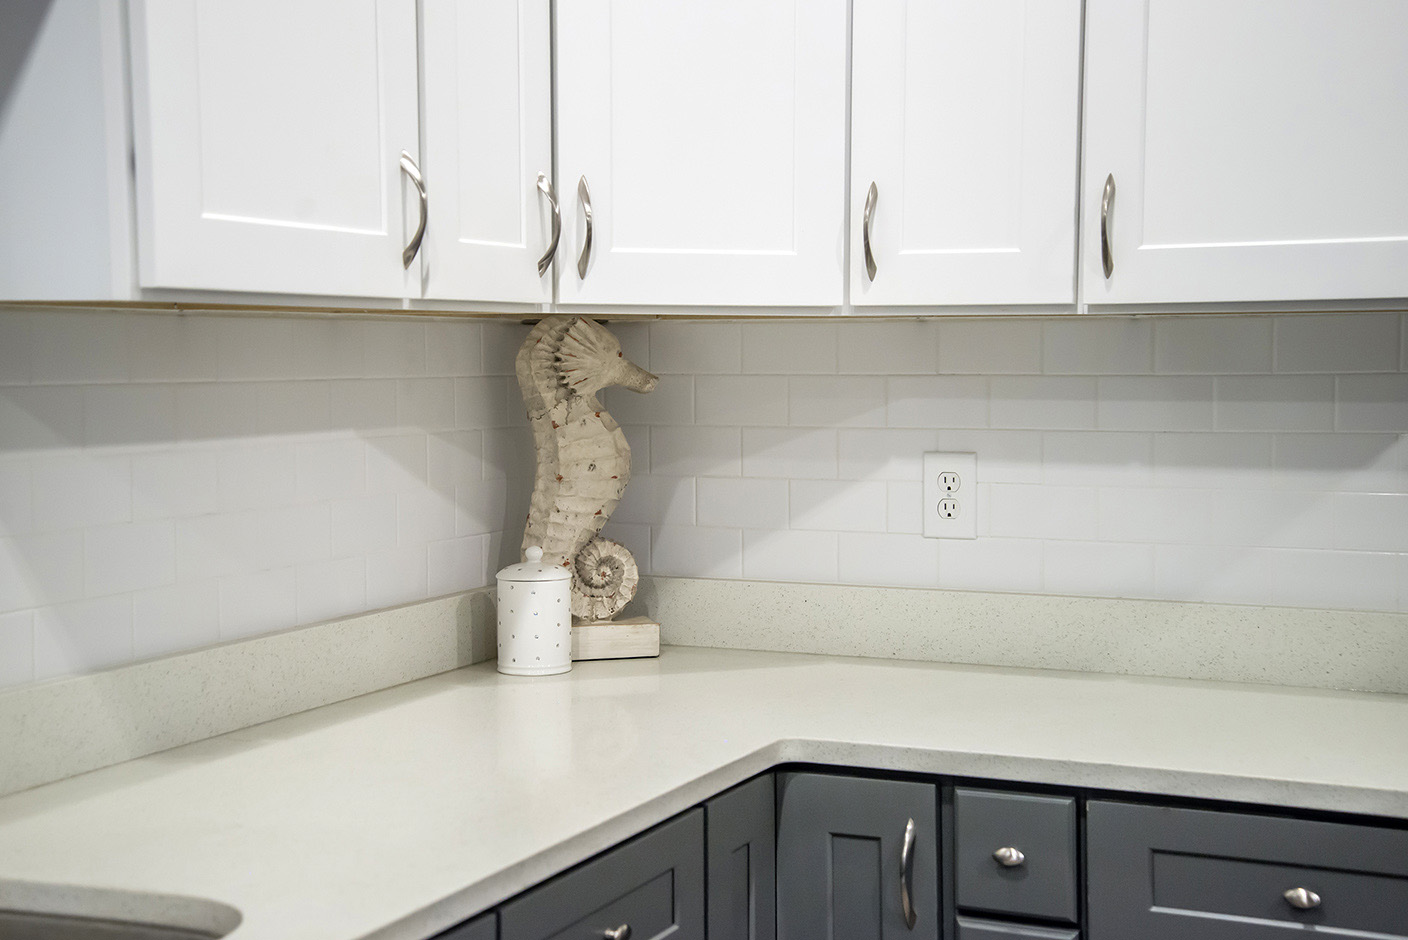 Beige Quartz Countertops White Subway Tile Backsplash Gray Base and White Upper Cabinets